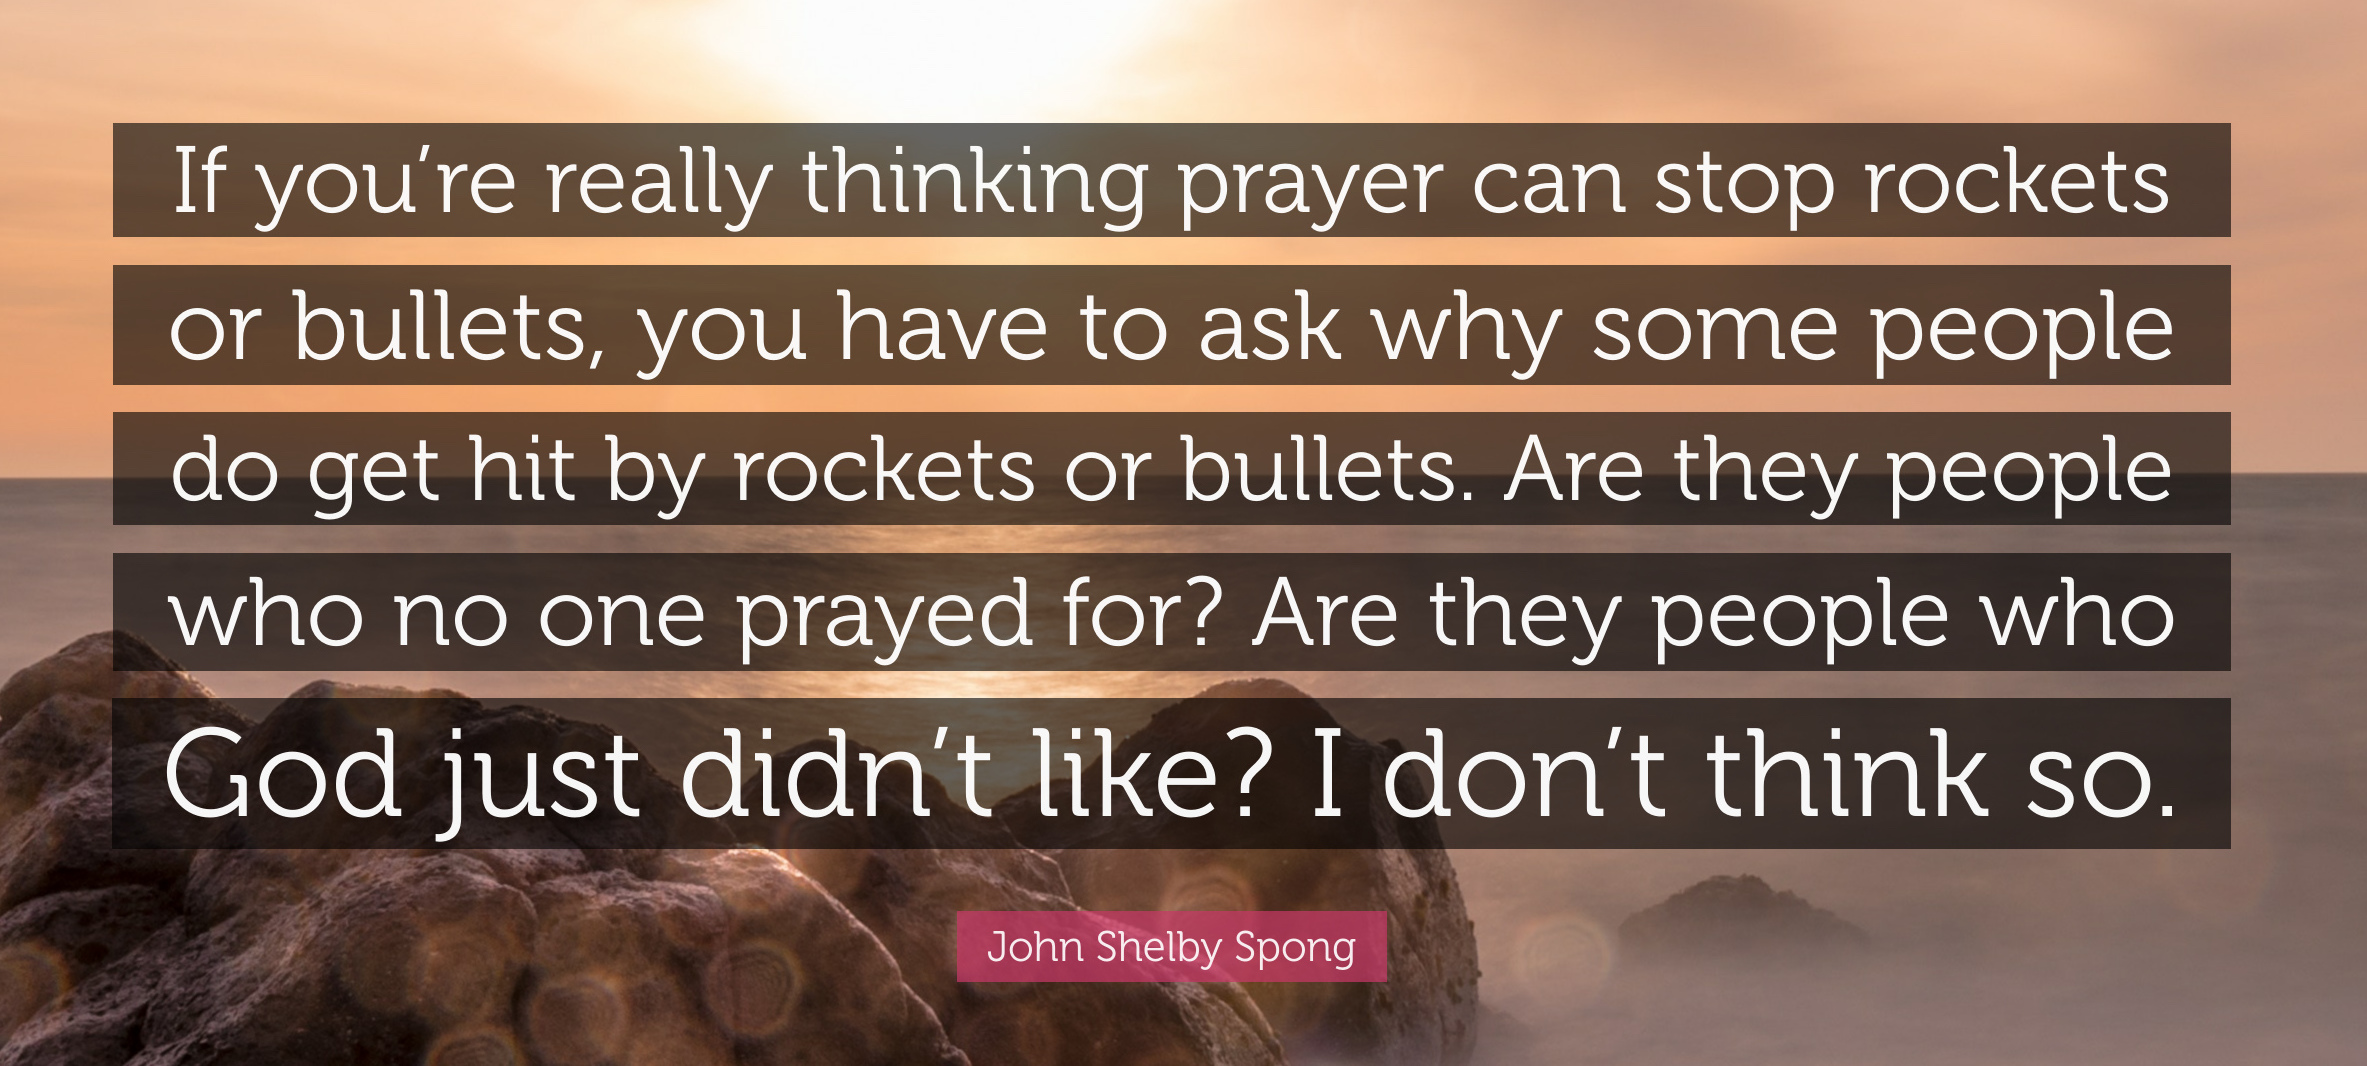 5278262-John-Shelby-Spong-Quote-If-you-re-really-thinking-prayer-can-stop